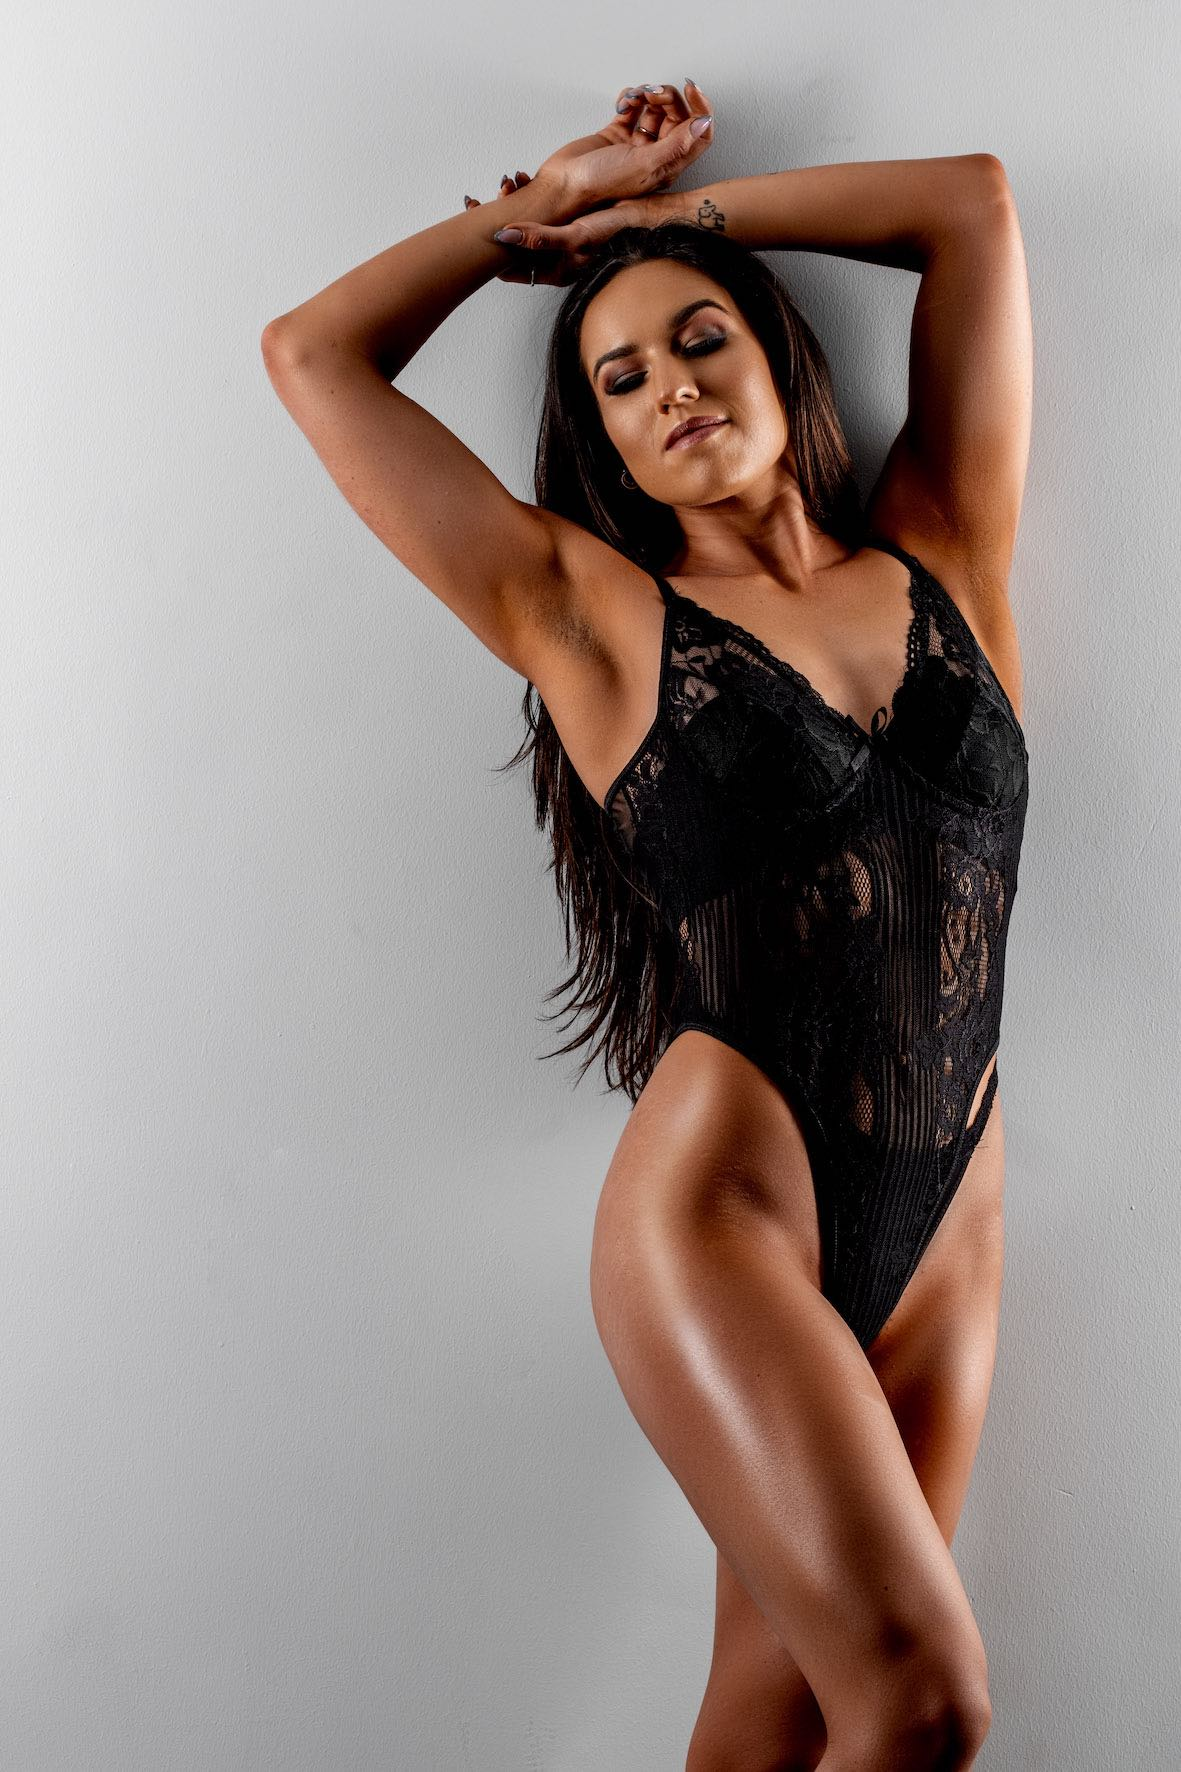 Meet Ashleigh Wilson in our South African babes feature